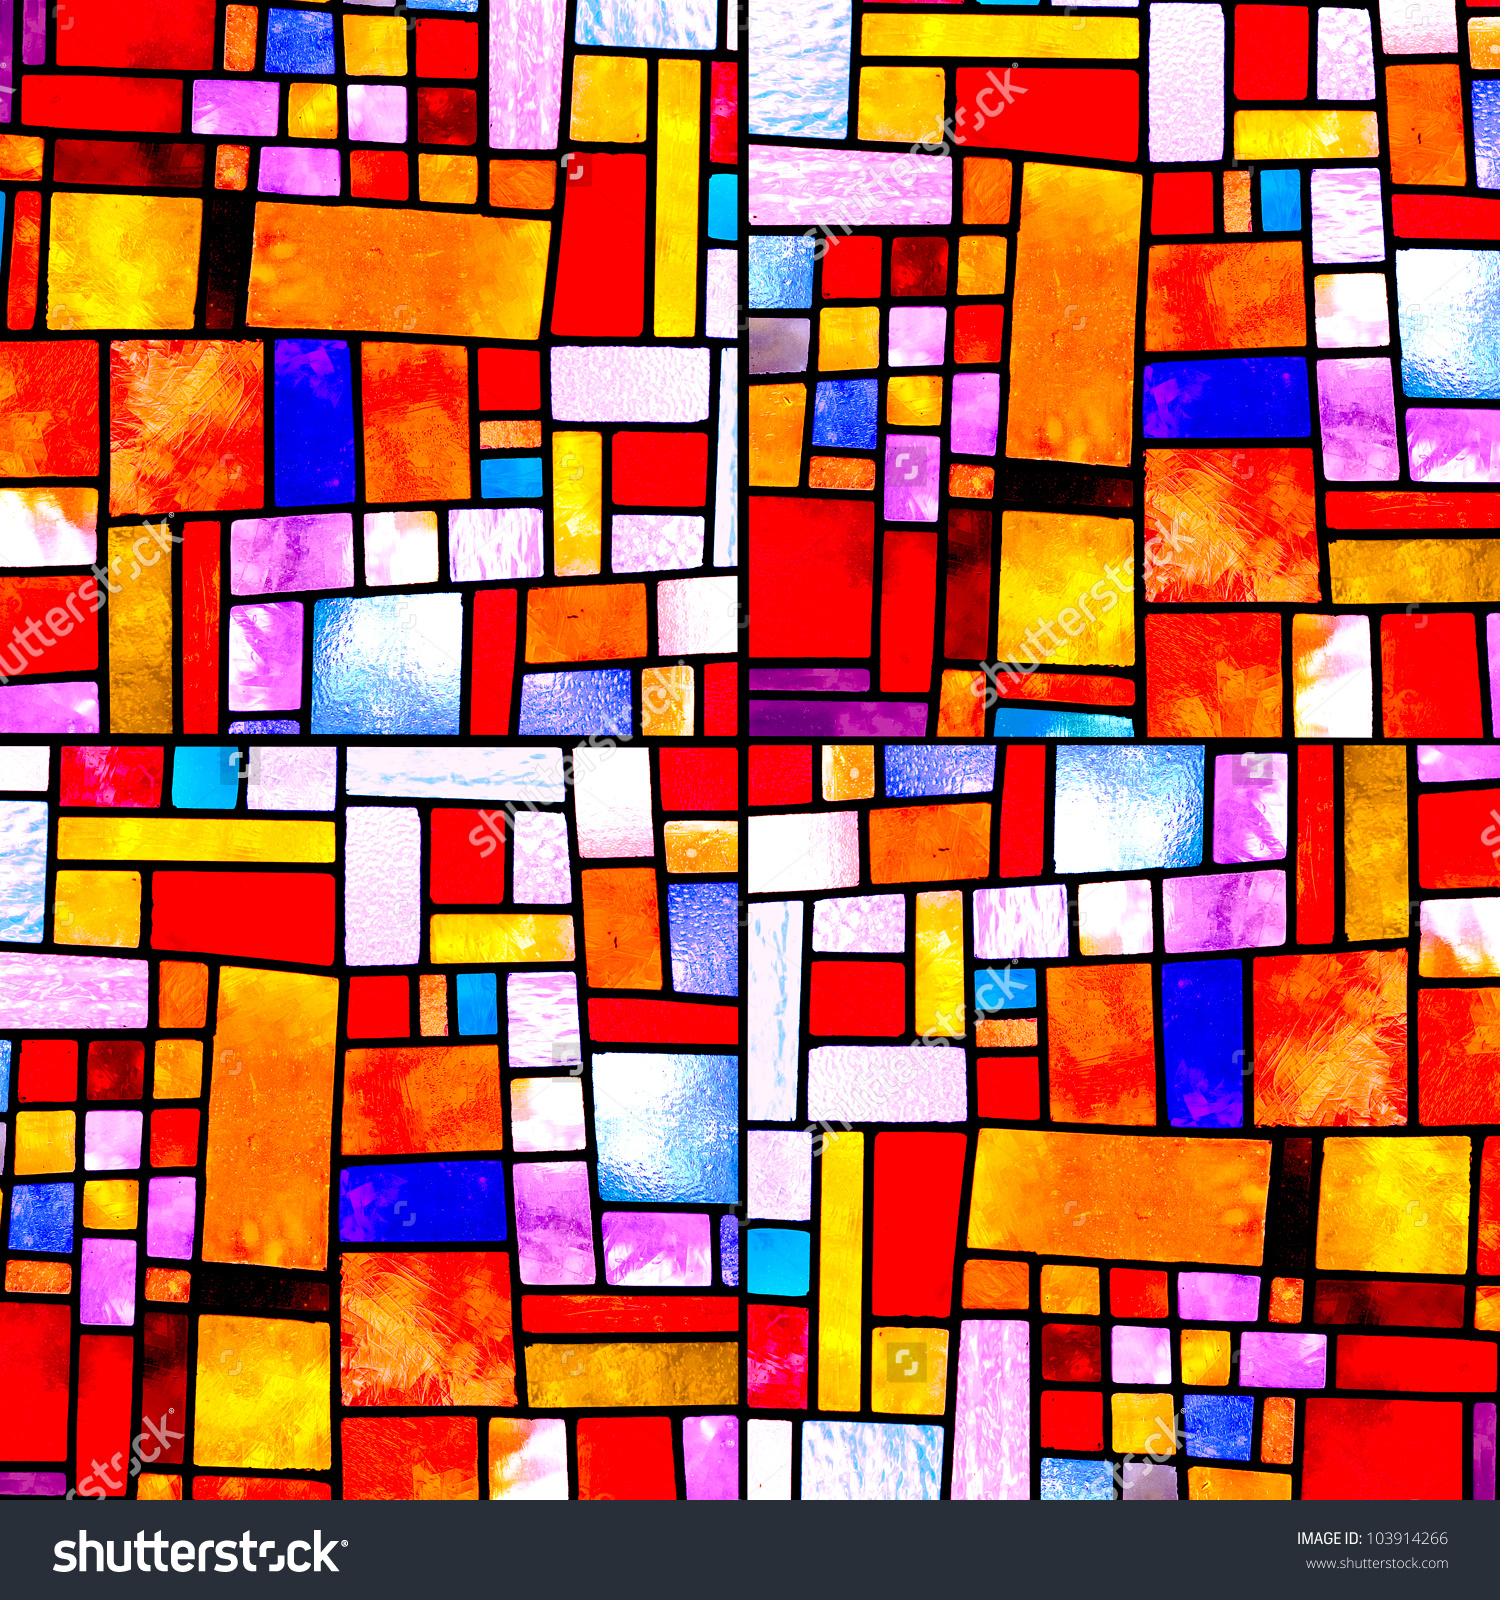 Nice Images Collection: Stained Glass Desktop Wallpapers